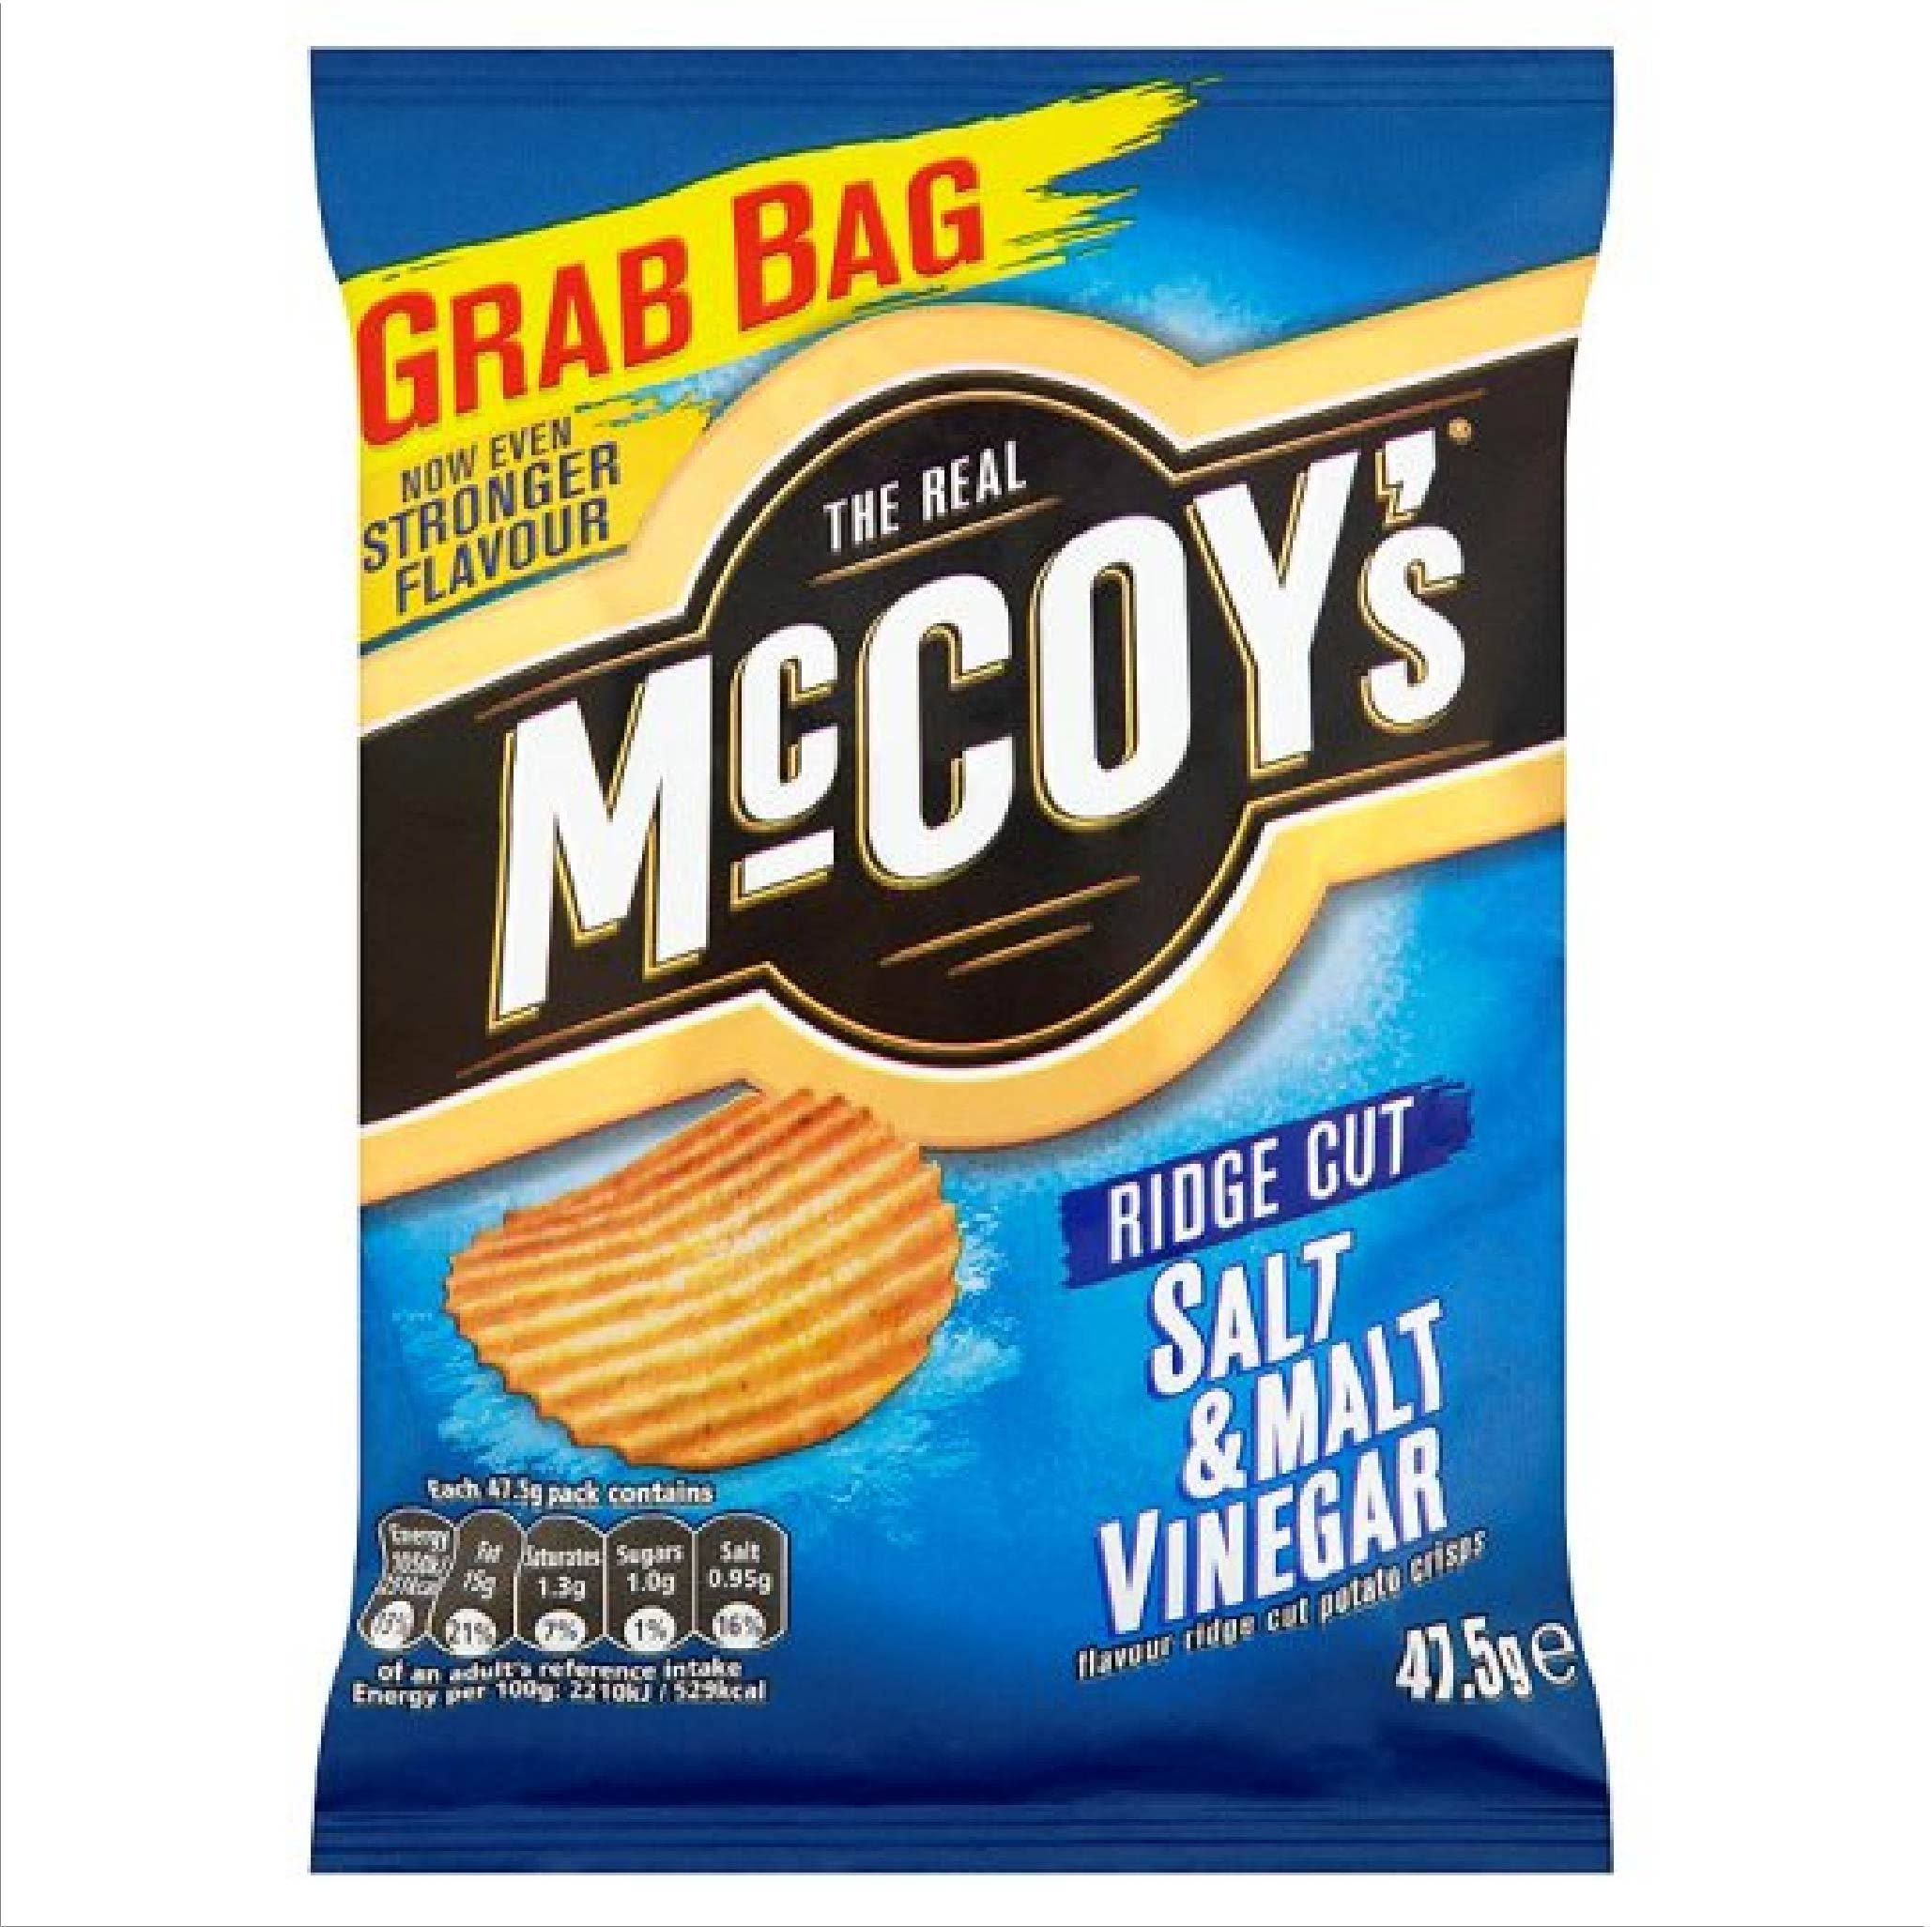 The Real McCoy's Ridge Cut Potato Crisps - Salt and Malt Vinegar Flavour, 47.5g